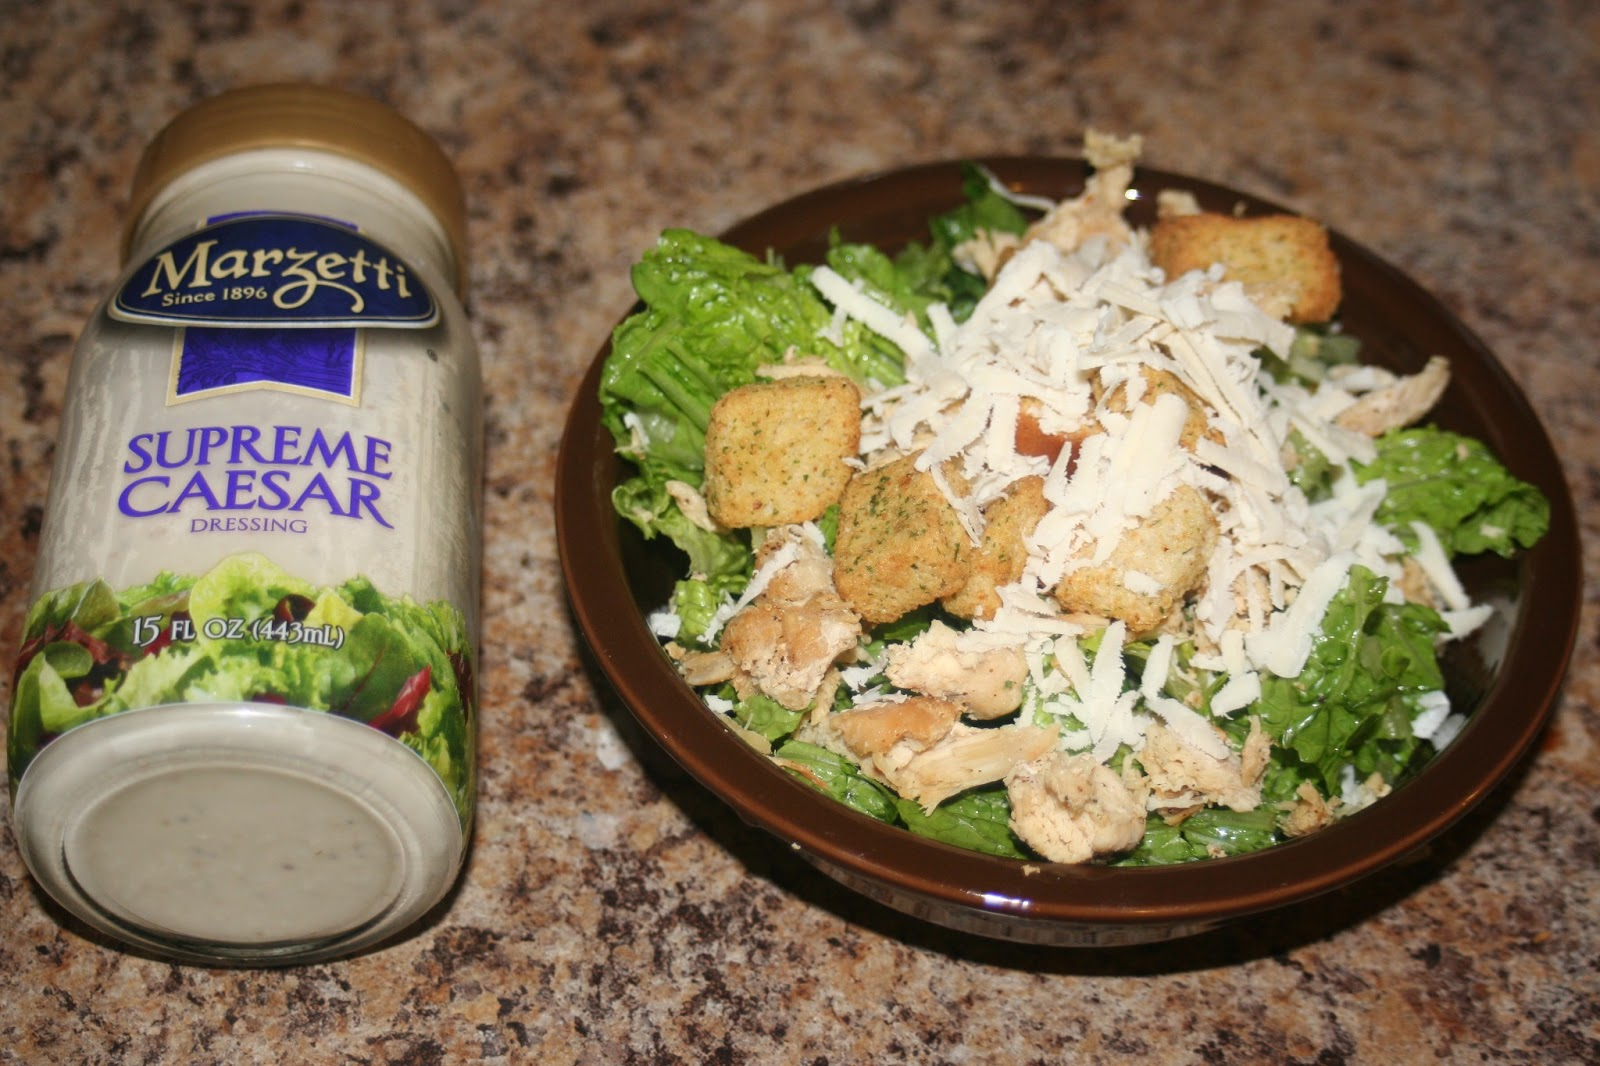 Recipes We Love: Grilled Chicken Caesar Salad